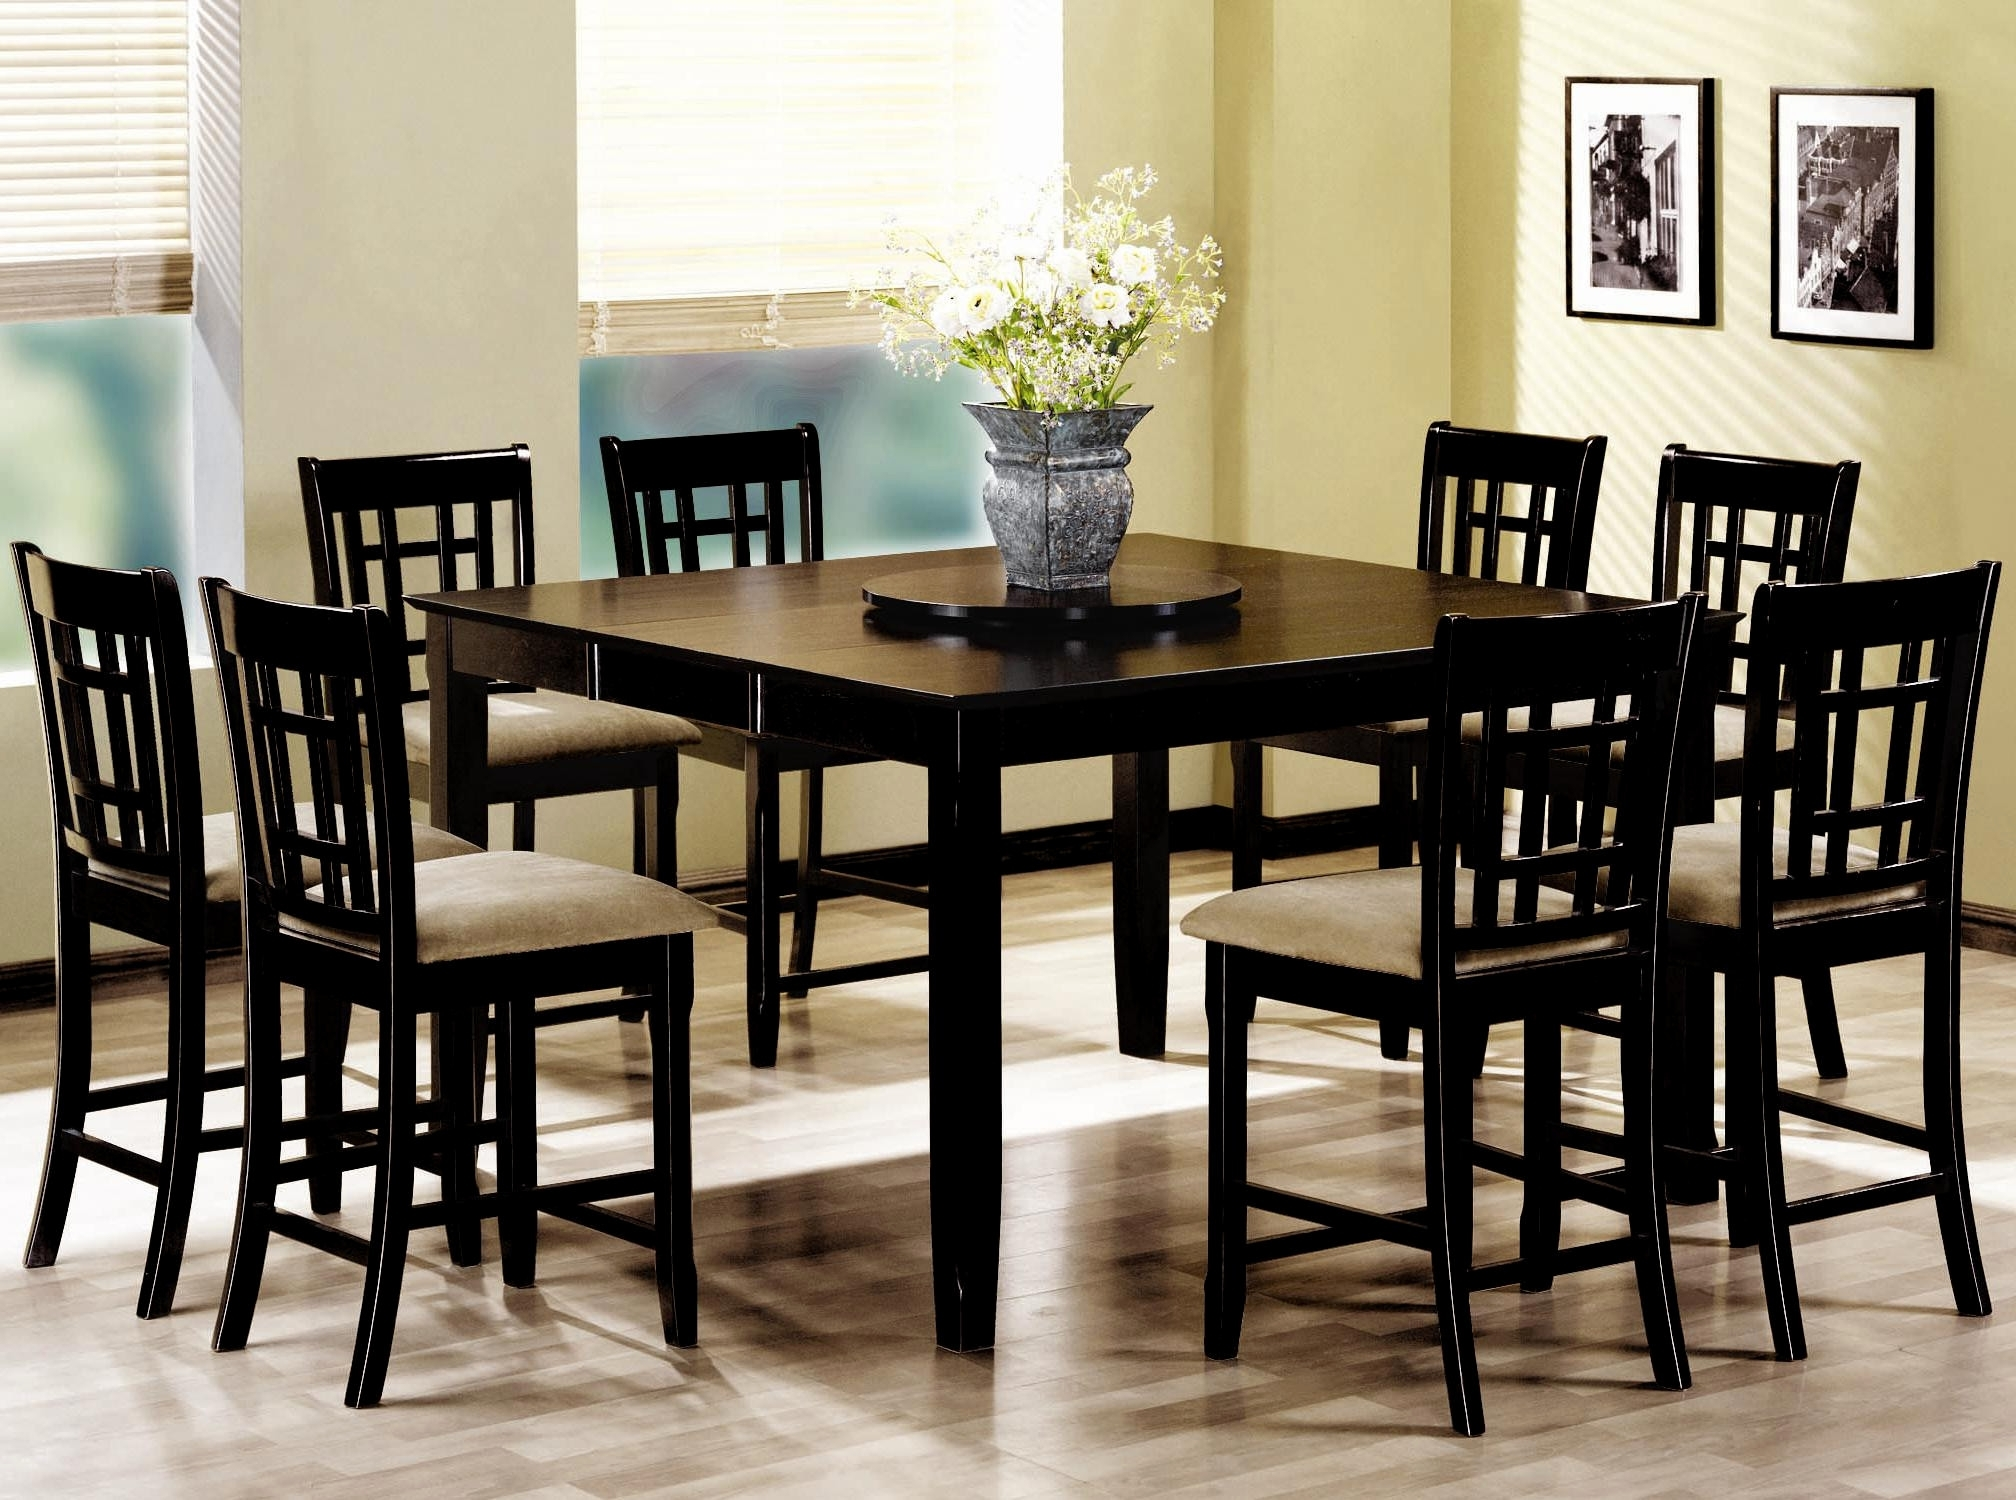 Dining Tables Set For 8 In Fashionable Luxury Round Dining Room Tables Sets For 8 – Round Dining Set For (View 13 of 25)